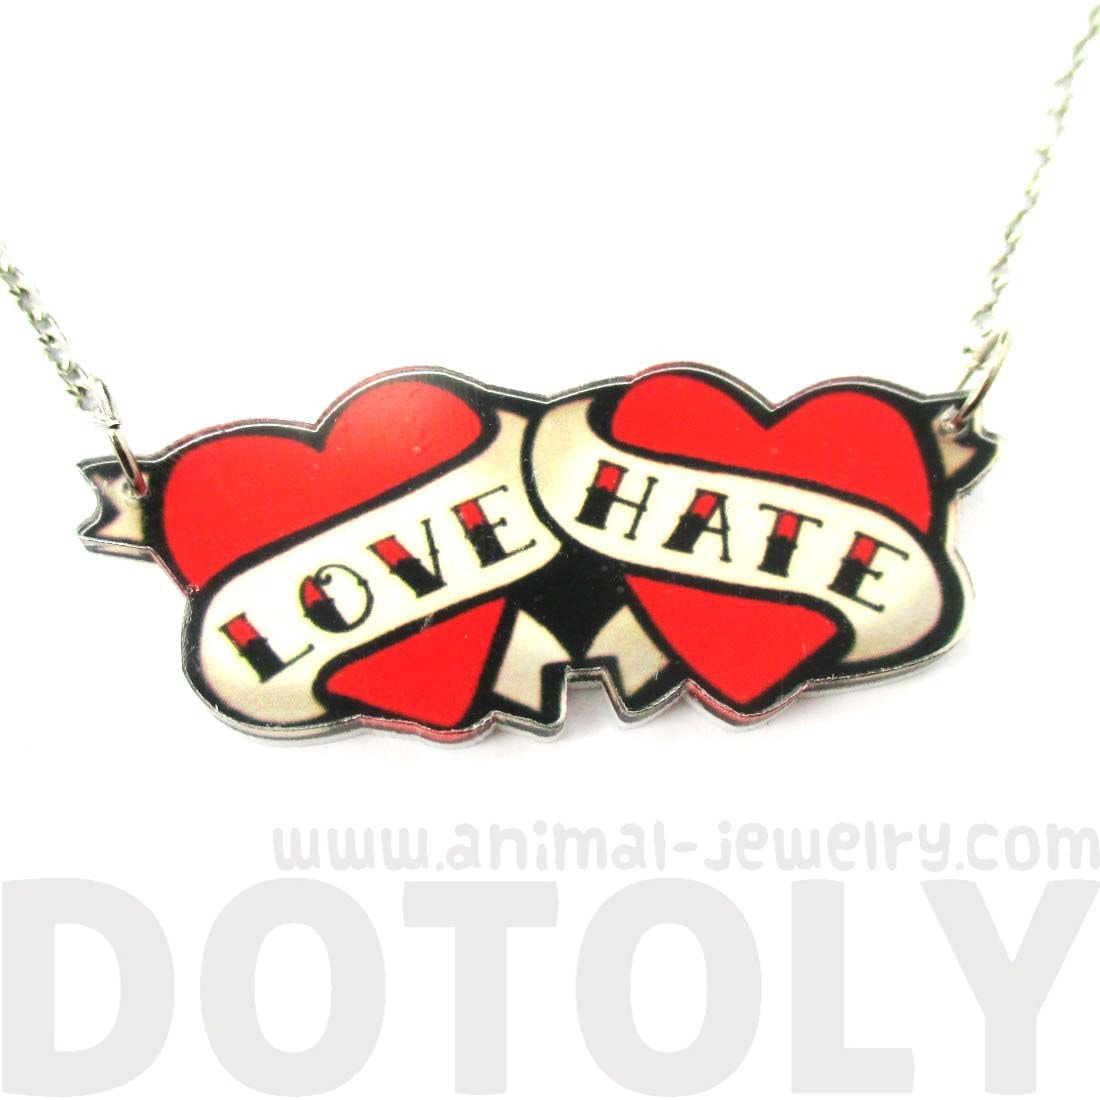 Love Hate Double Heart Banner Shaped Tattoo Inspired Acrylic Necklace